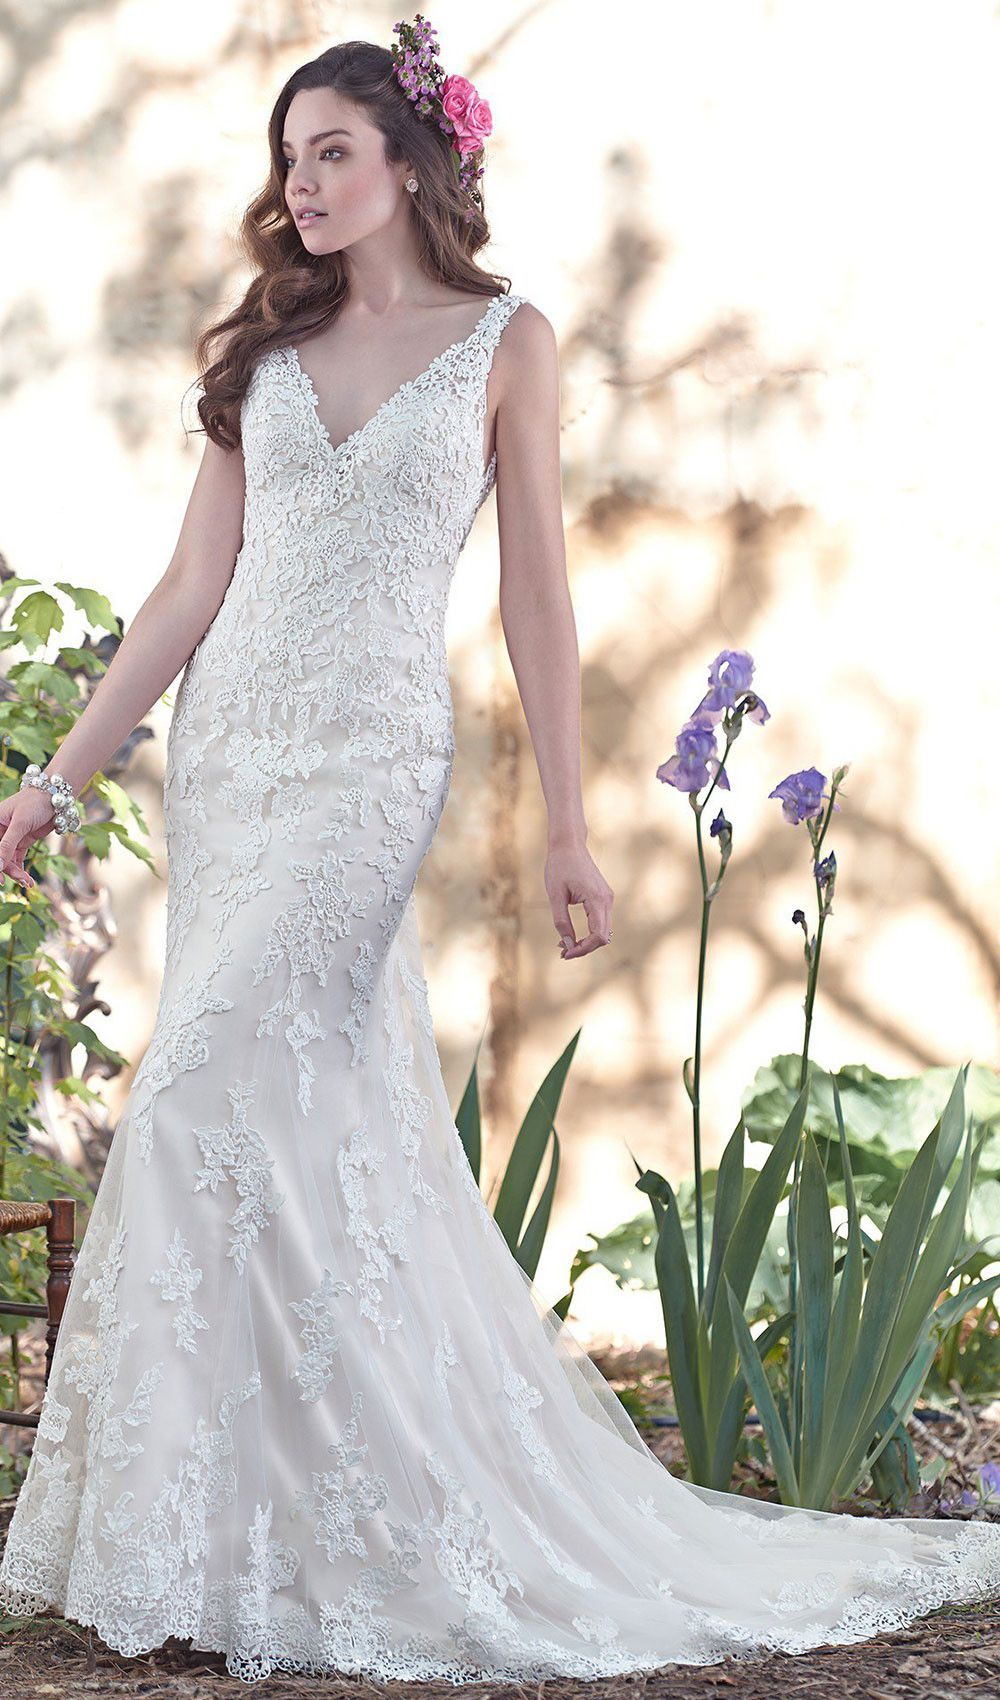 Try this tulle wedding dress with deep vneckline and stunning